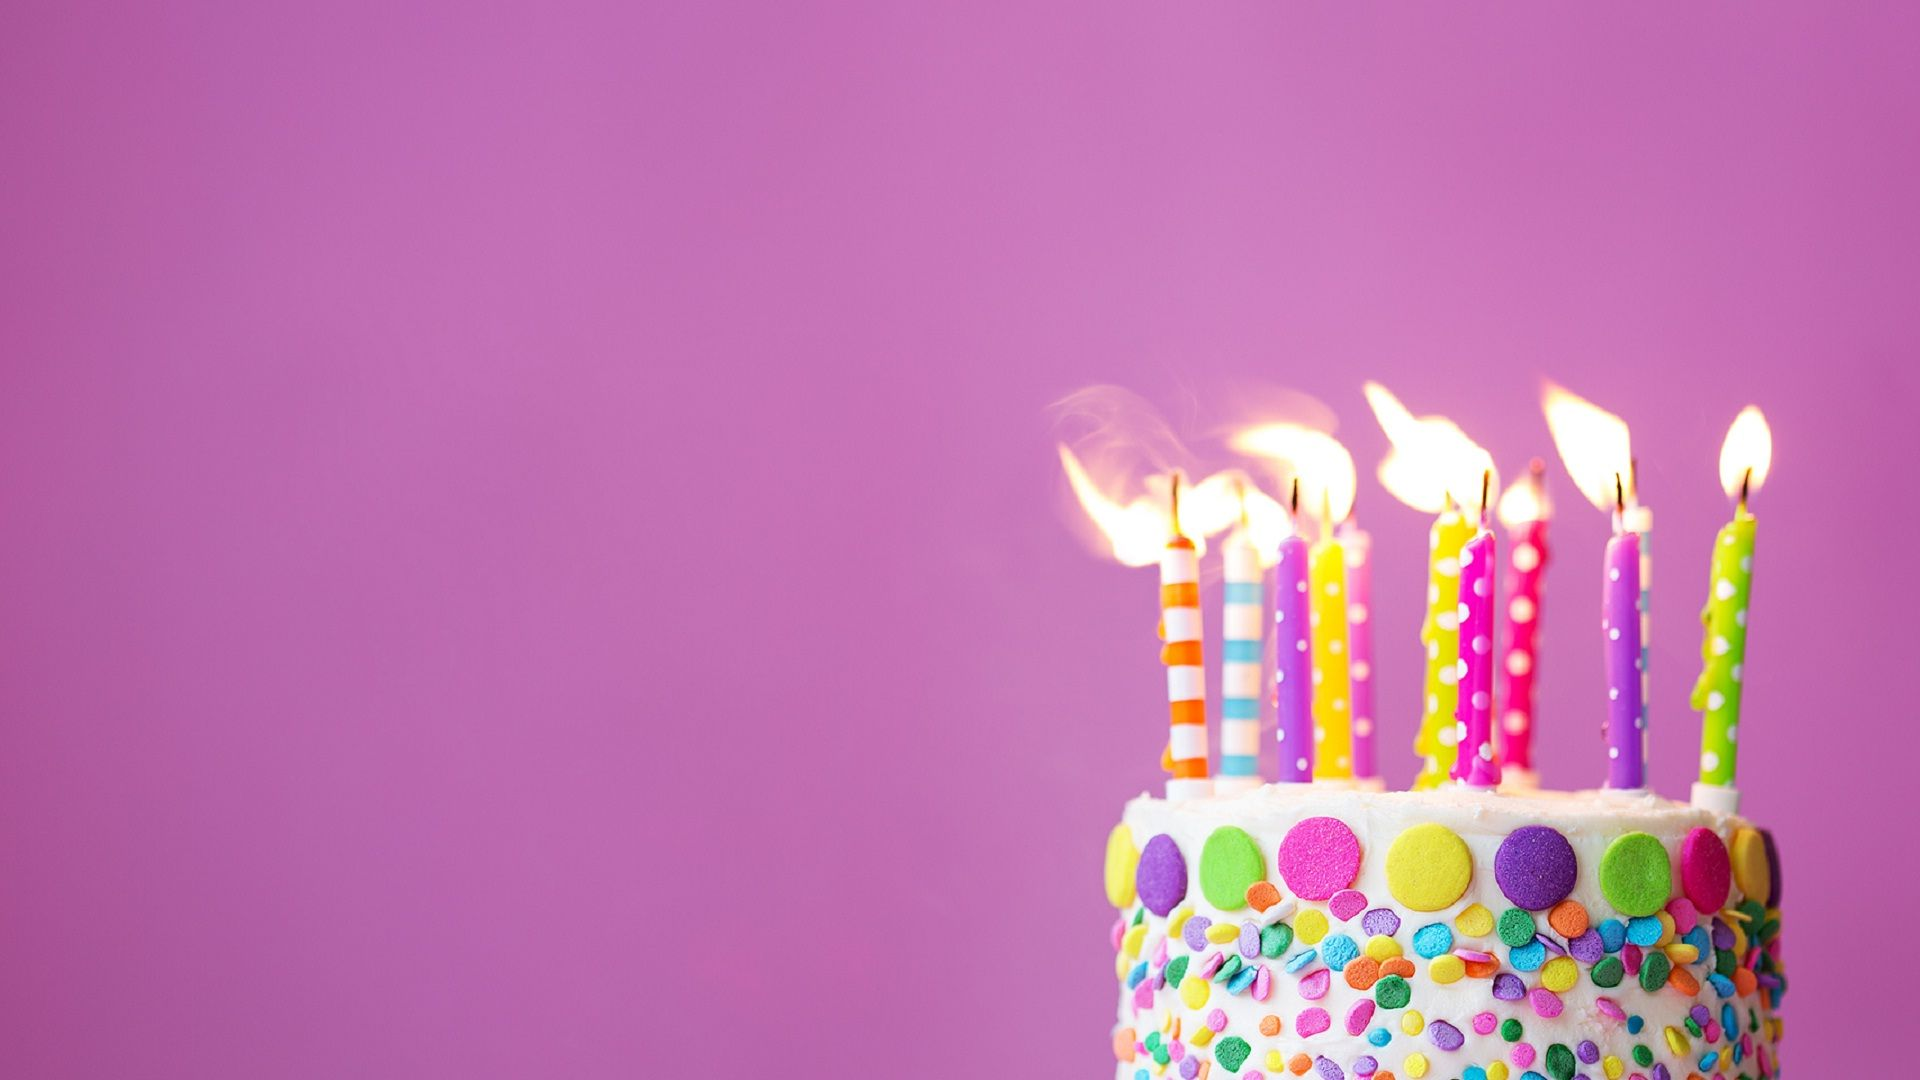 Happy Birthday Hd Cake Wallpaper Images High Quality